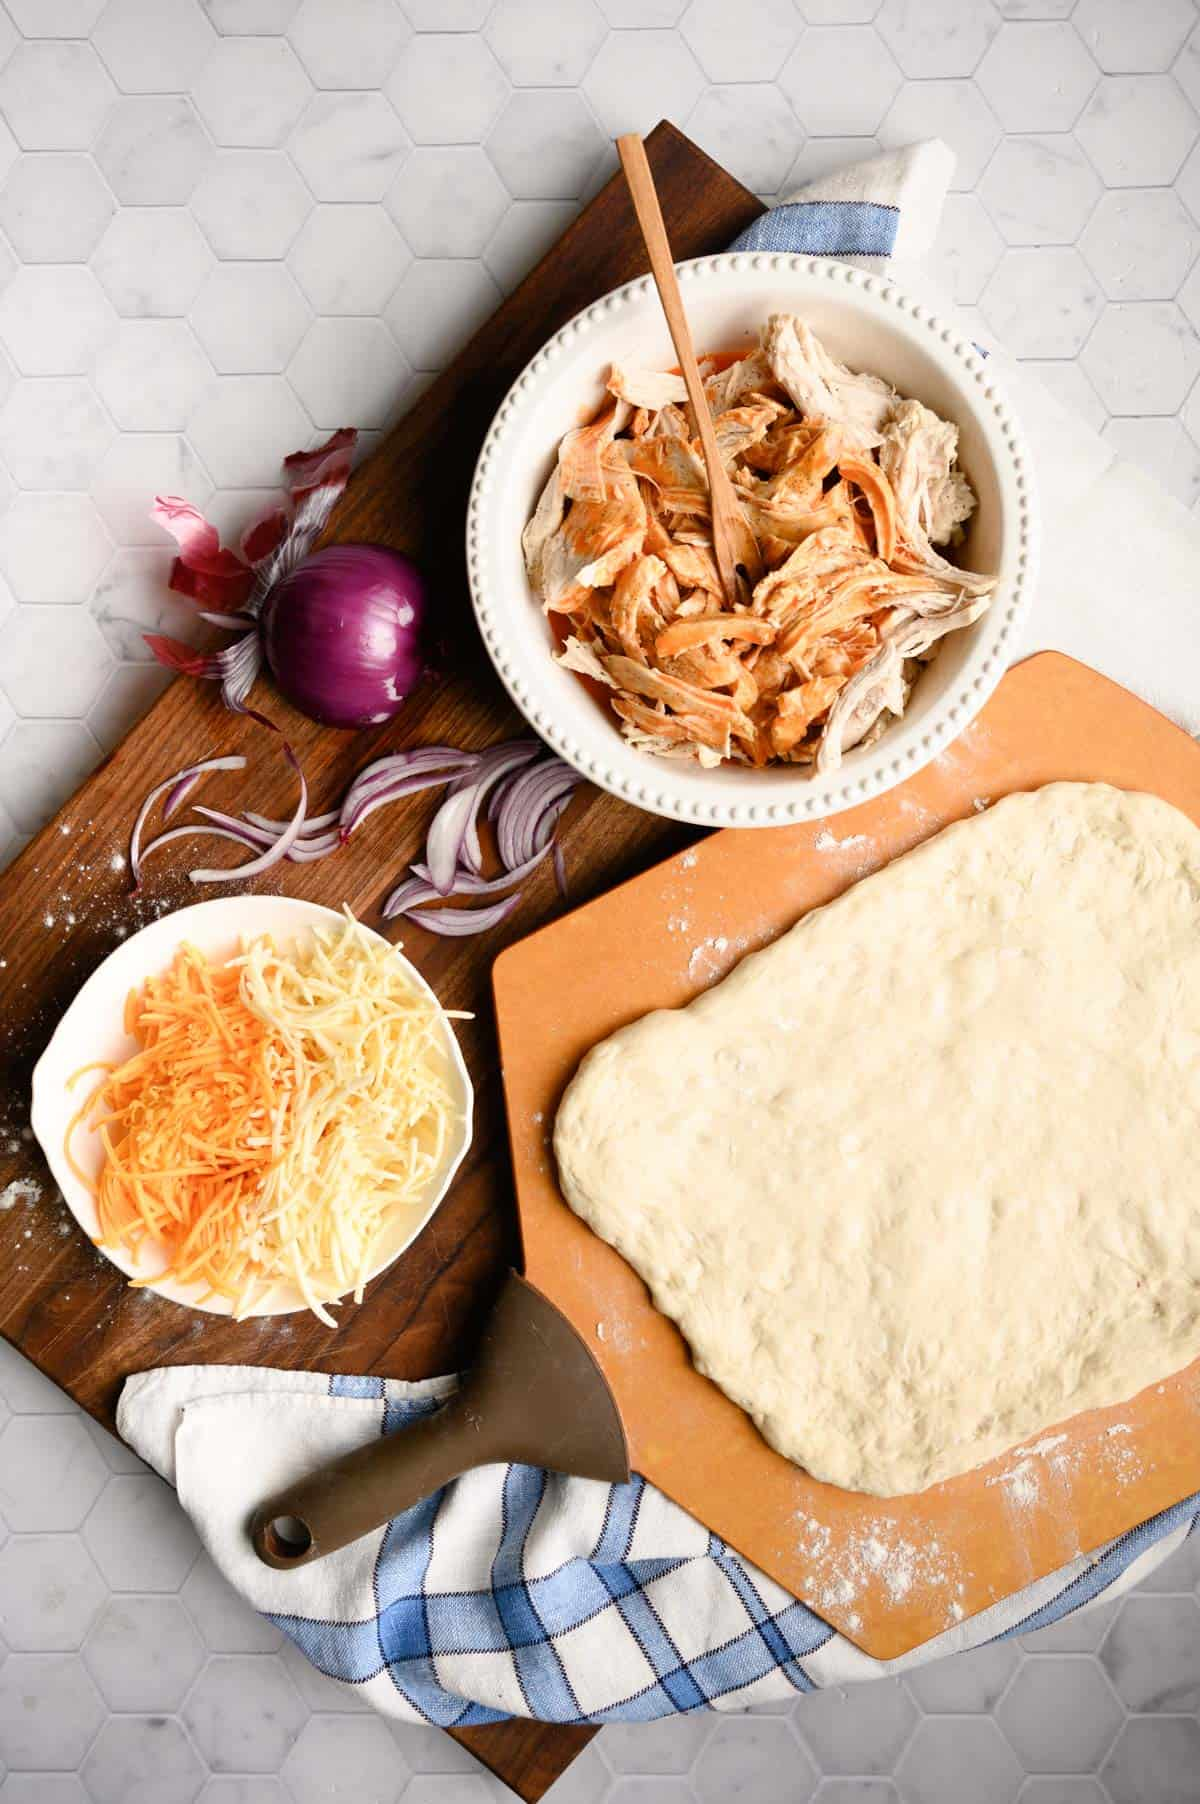 pizza peel with pizza dough rolled out and bowls of shredded chicken and cheese